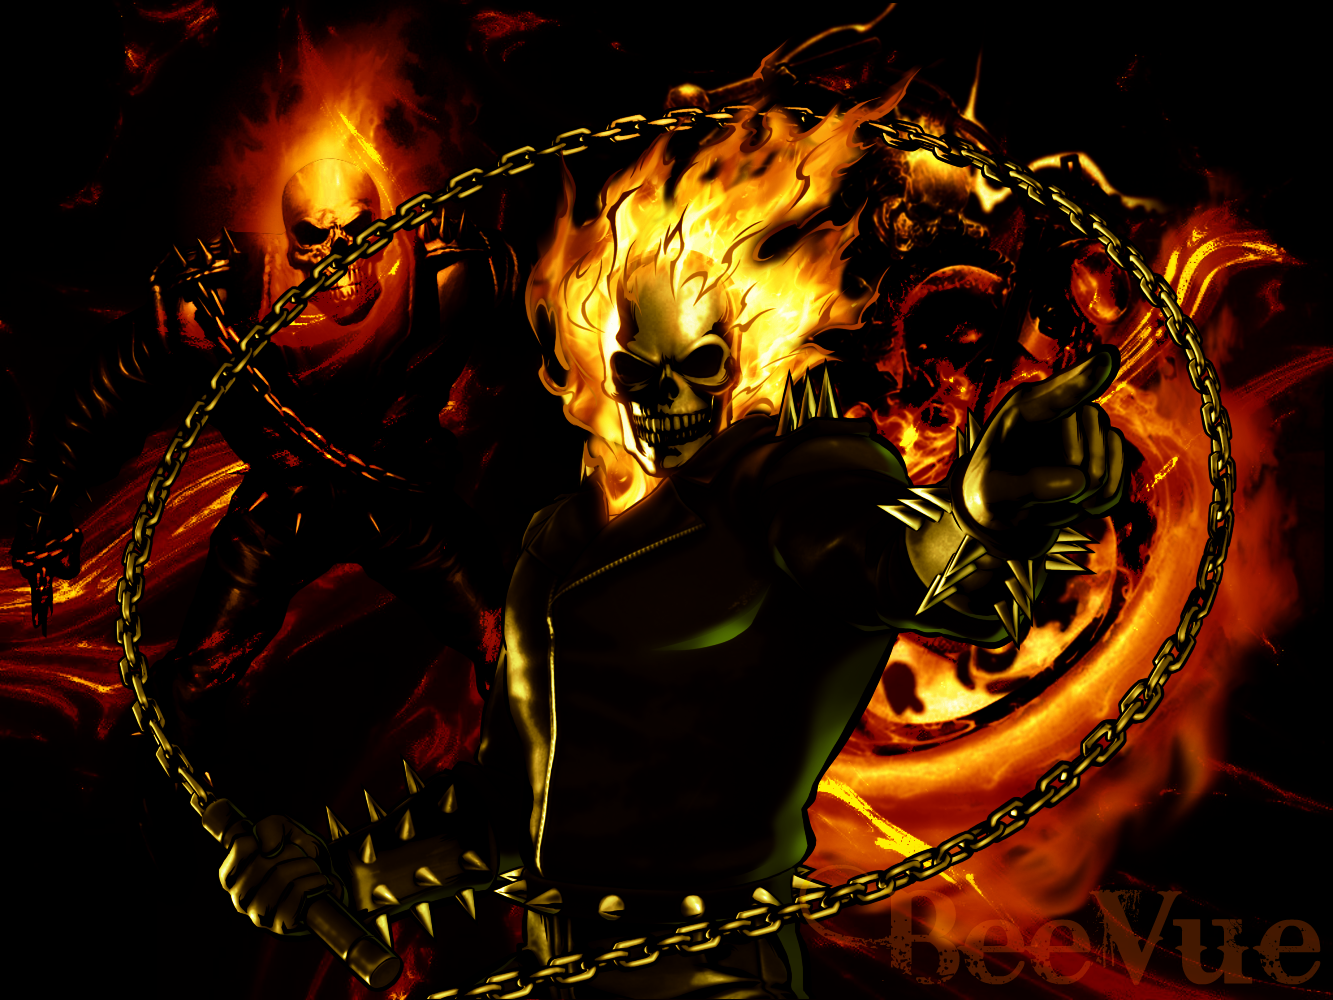 By Librada Foran - Ghost Rider Wallpapers, 1333x1000 px